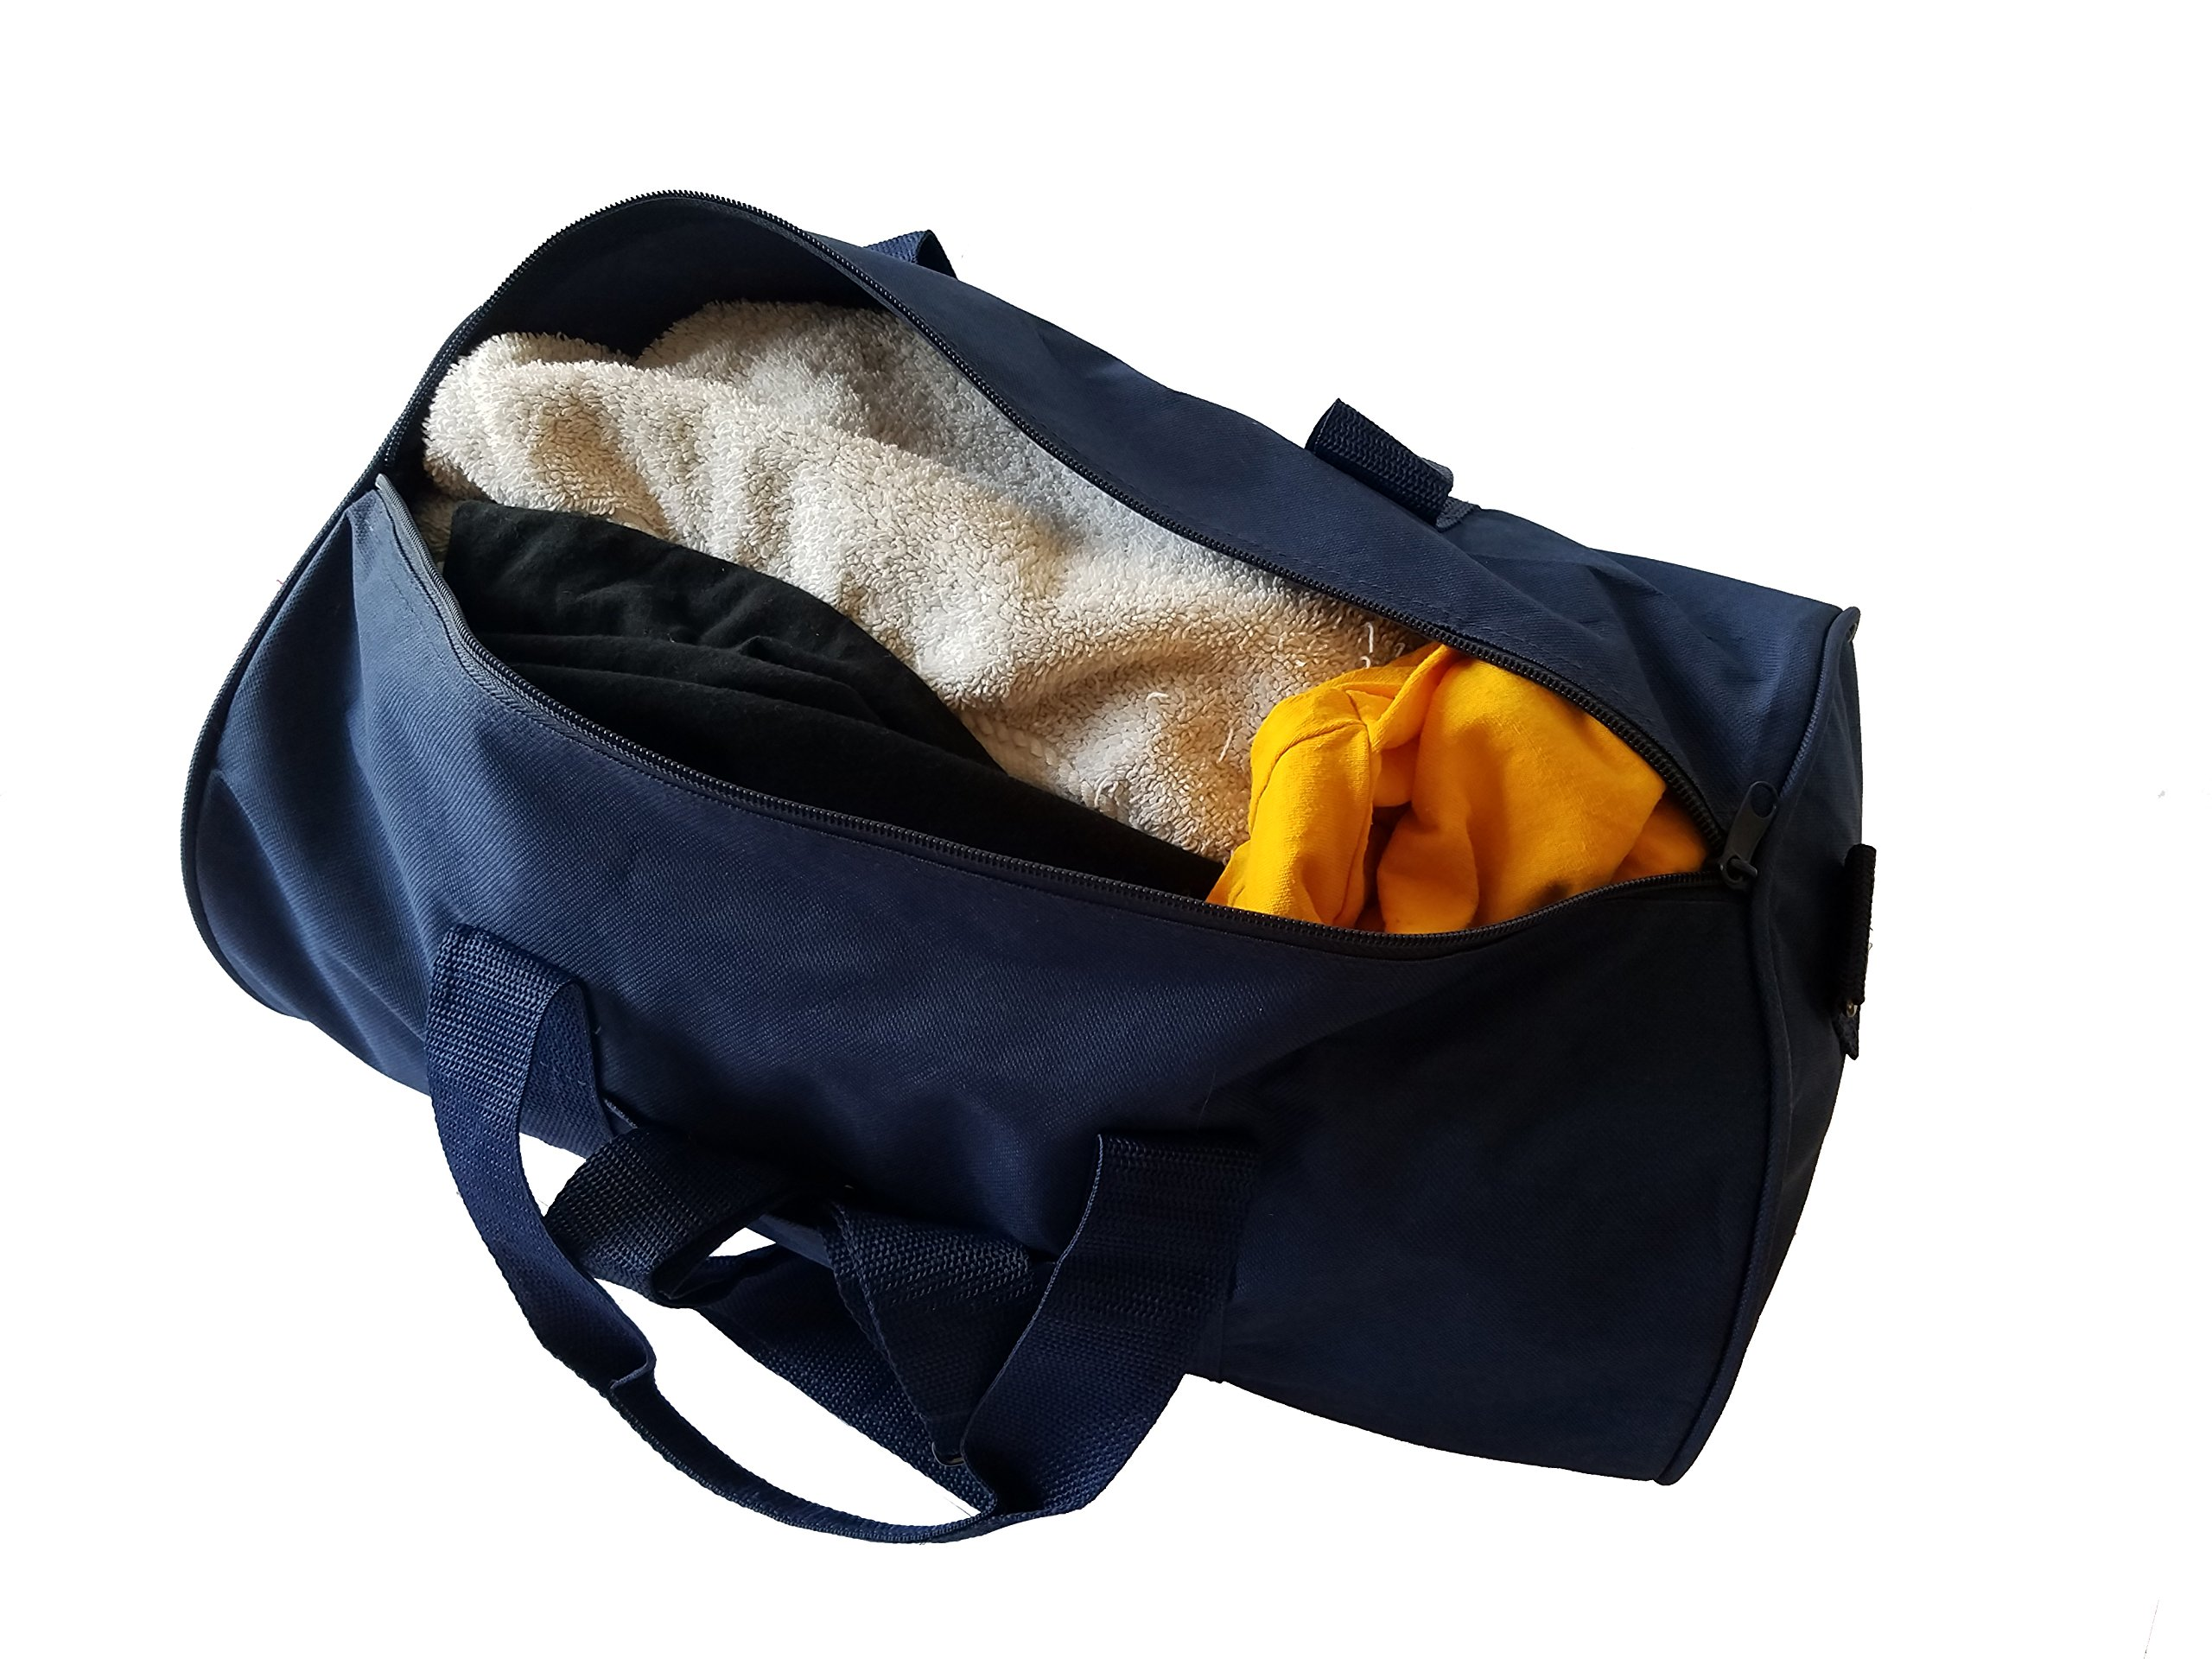 ImpecGear Round Duffel Sports Bags, Travel Gym Fitness Bag. (Navy) by ImpecGear (Image #2)